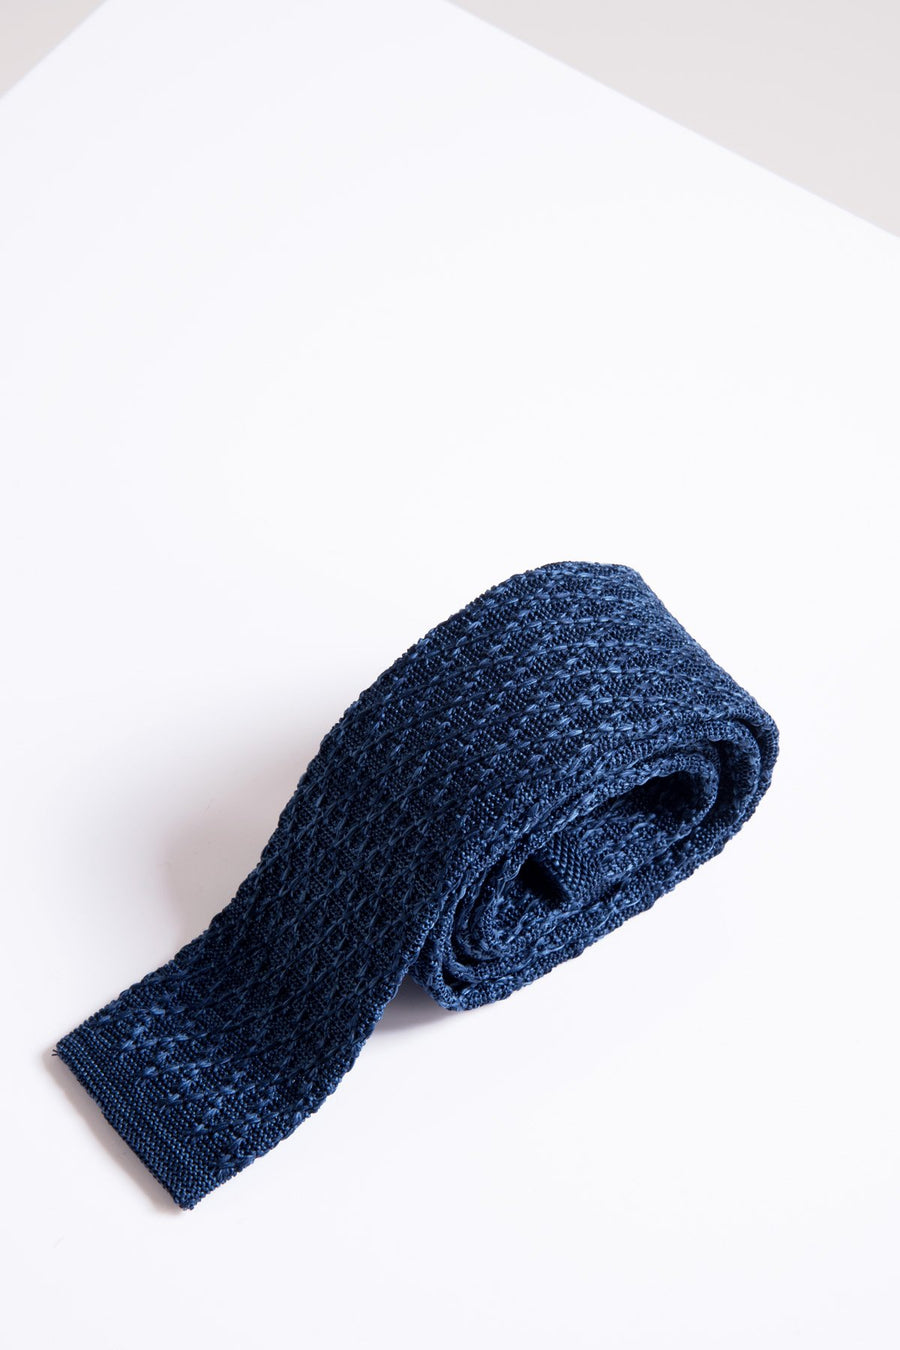 KT Blue Marl Knitted Tie - Wedding Suit Direct